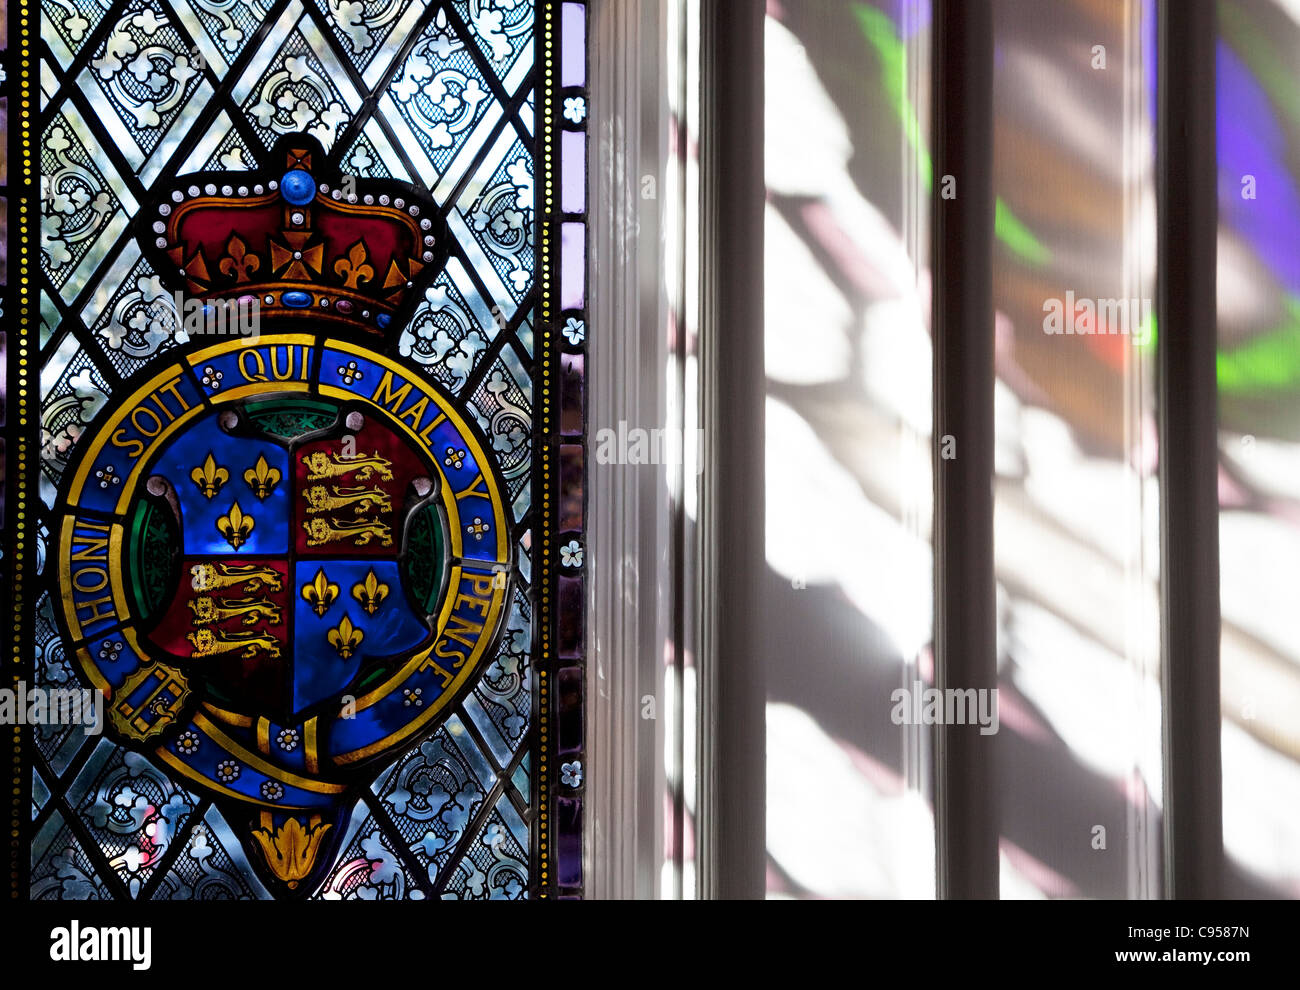 Strawberry Hill House, Twickenham, London - stained glass window - Stock Image